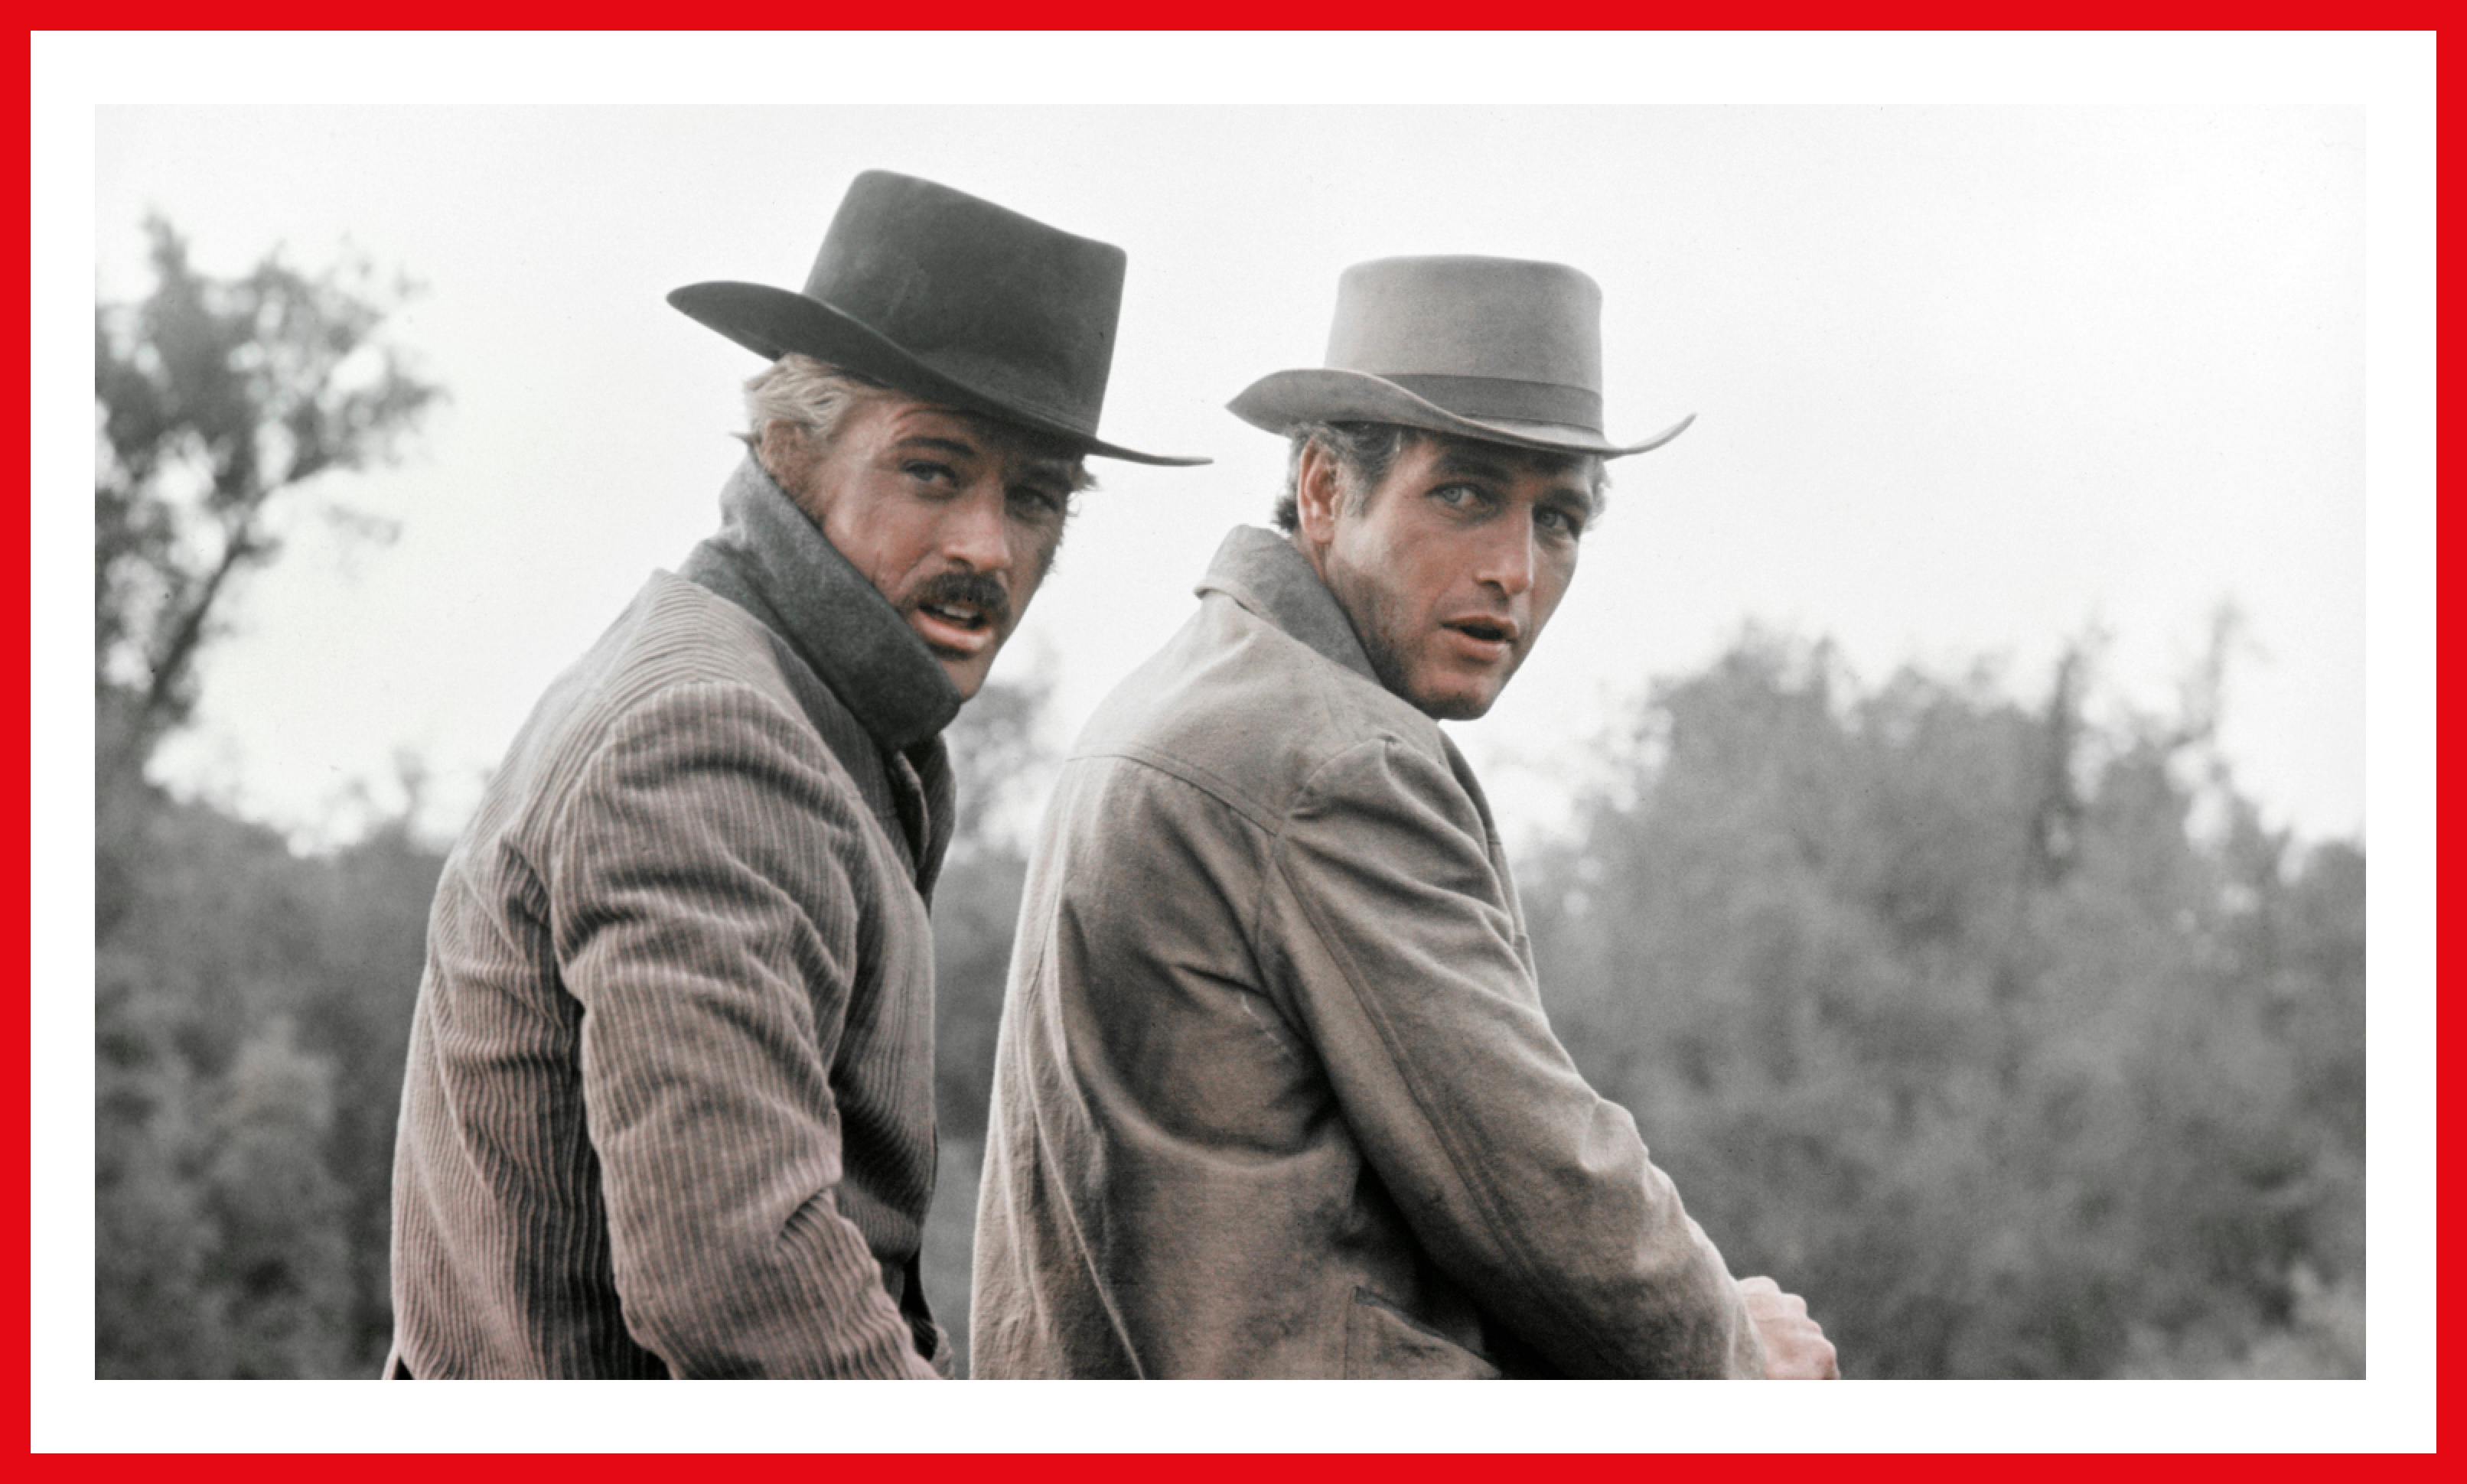 A still from the film. Robert Redford and Paul Newman ride through the Wild West.